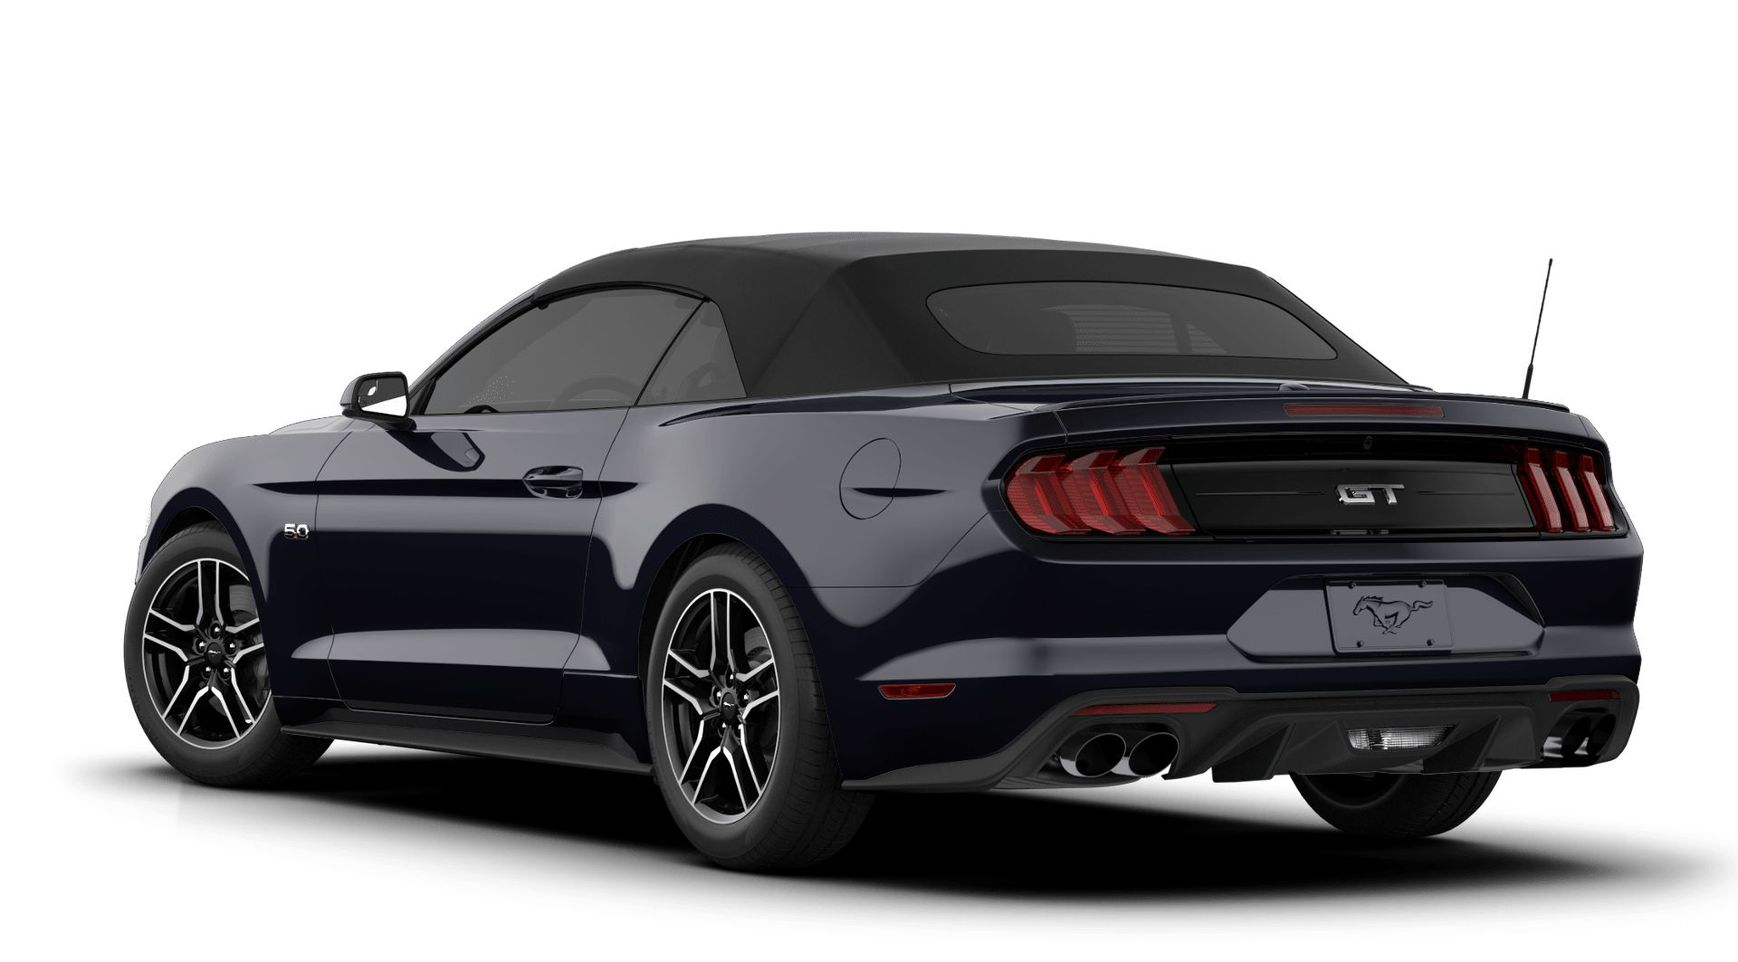 Ford Mustang 2021 GT Premium Convertible